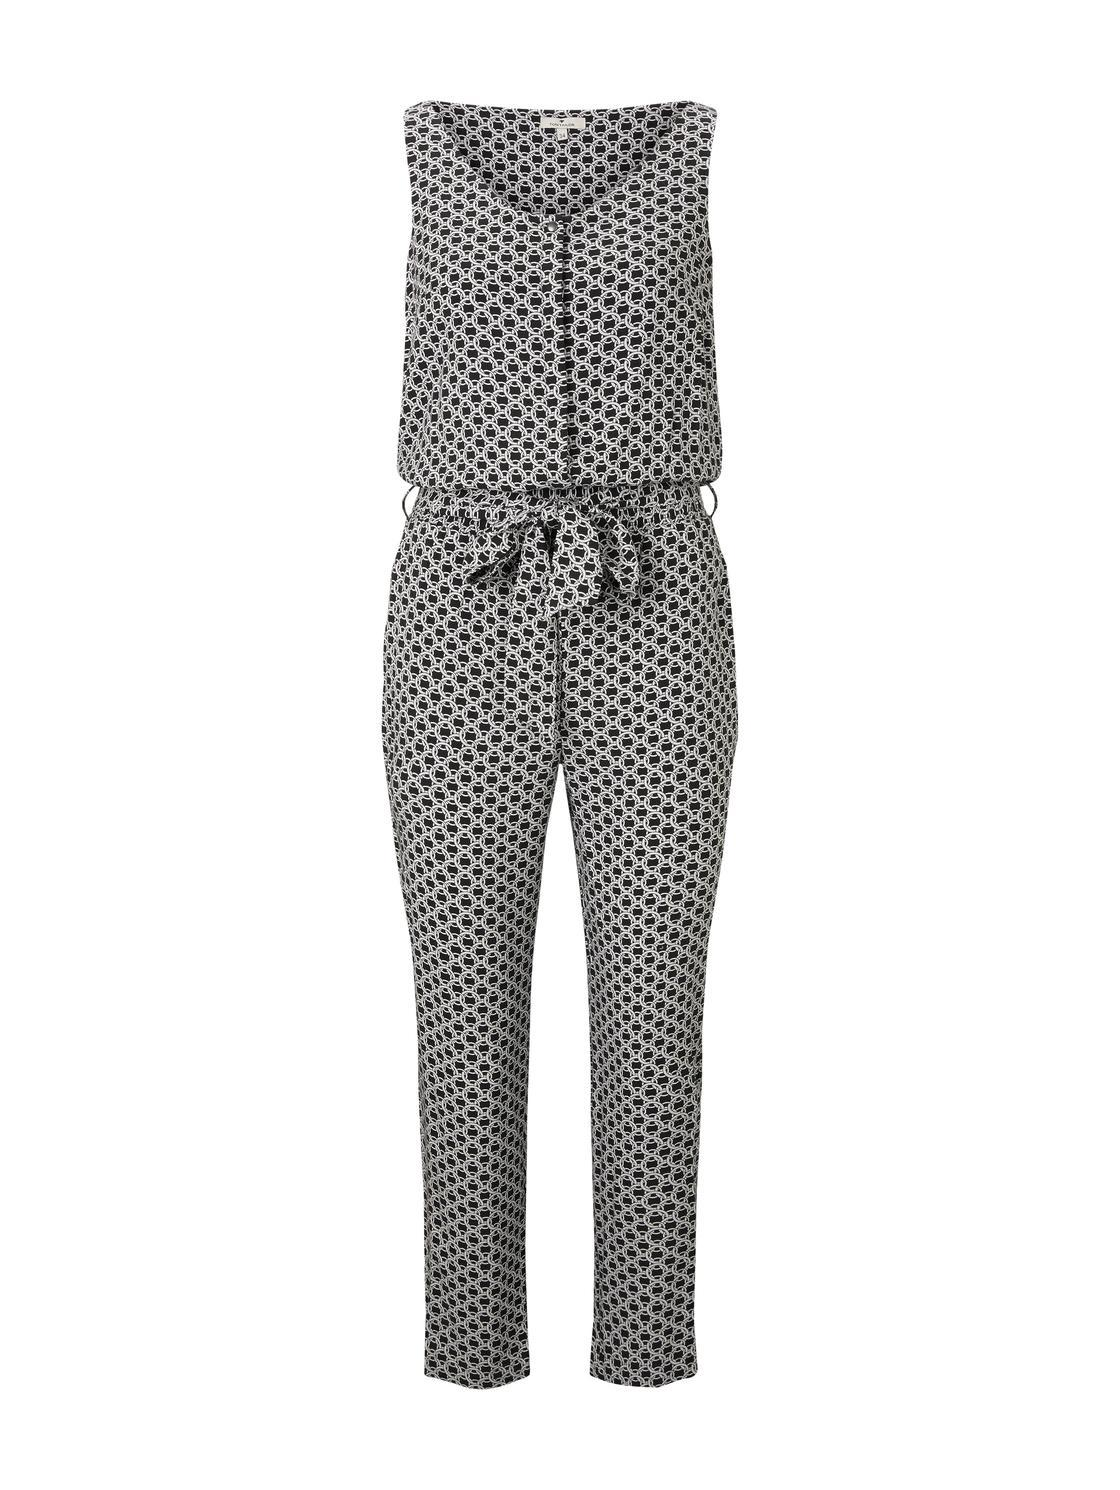 Tom Tailor Overall